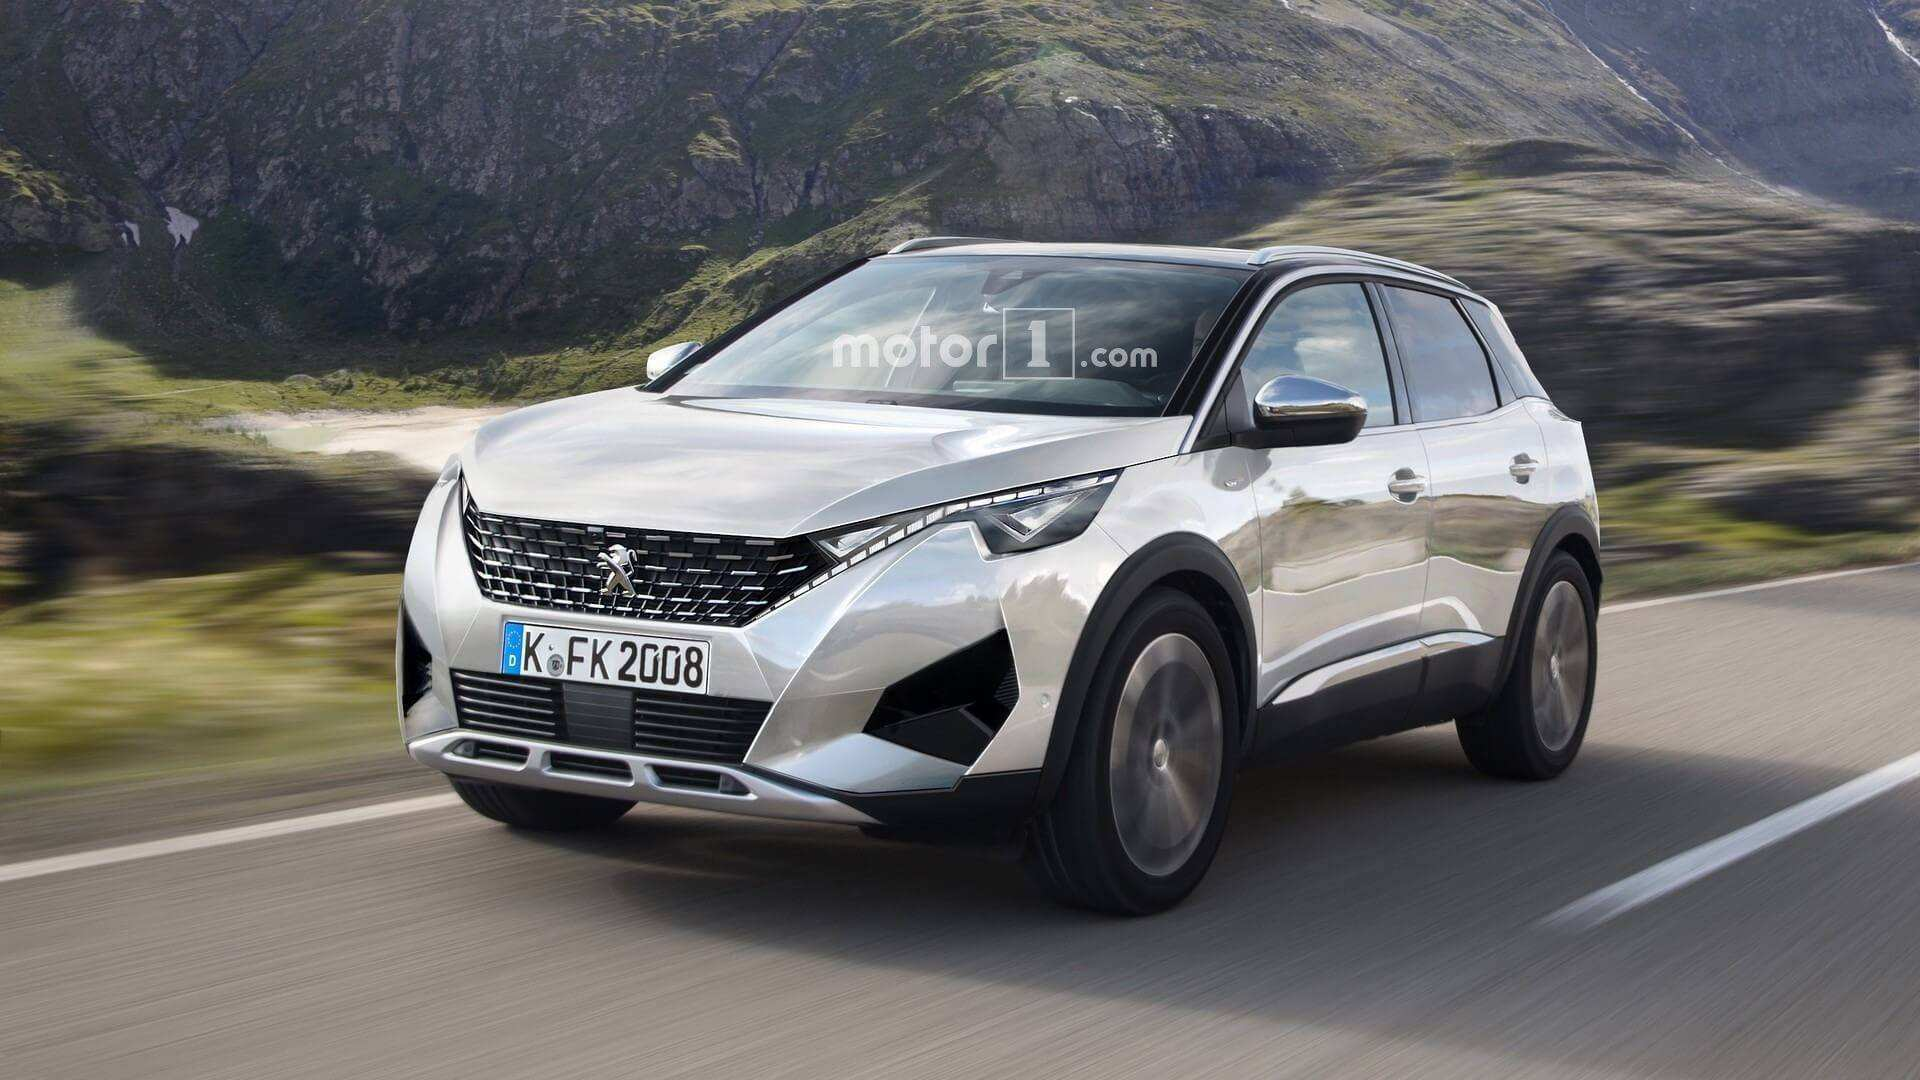 21 Best Review 2019 Peugeot 2008 First Drive for 2019 Peugeot 2008